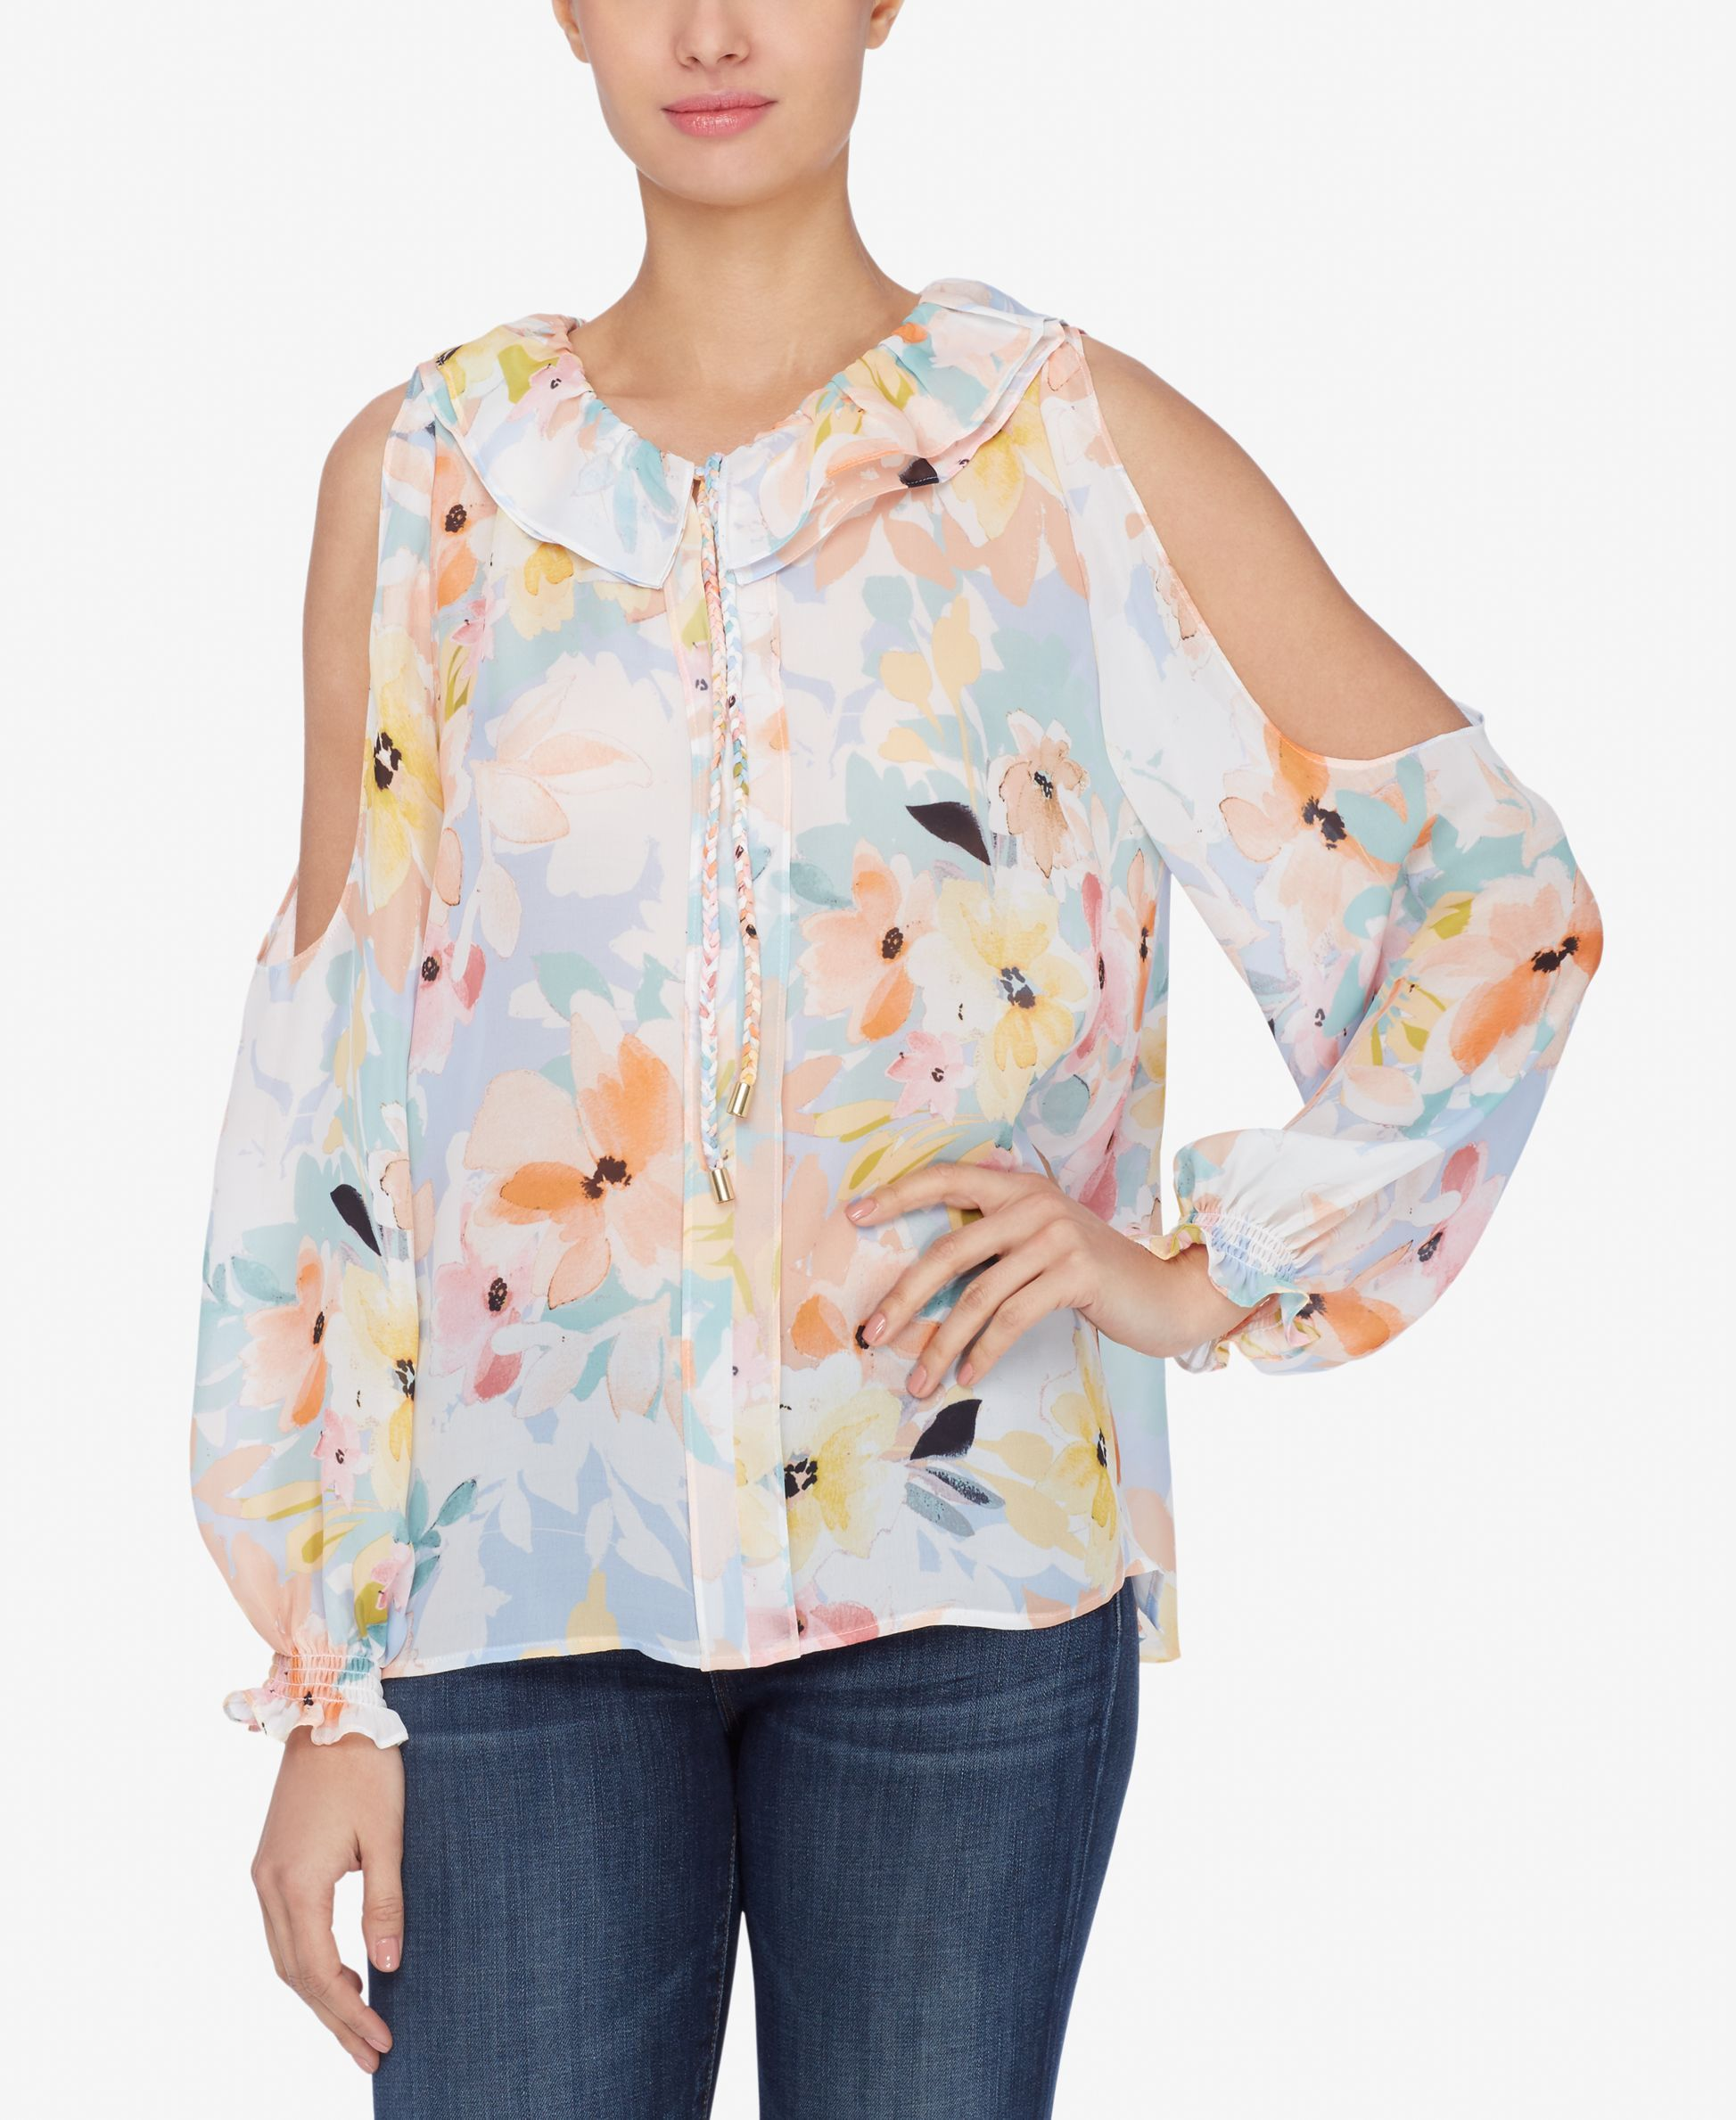 Catherines Red Floral Blouse Womens 1X S//S Poly//Span Button Up Casual Shirt NEW